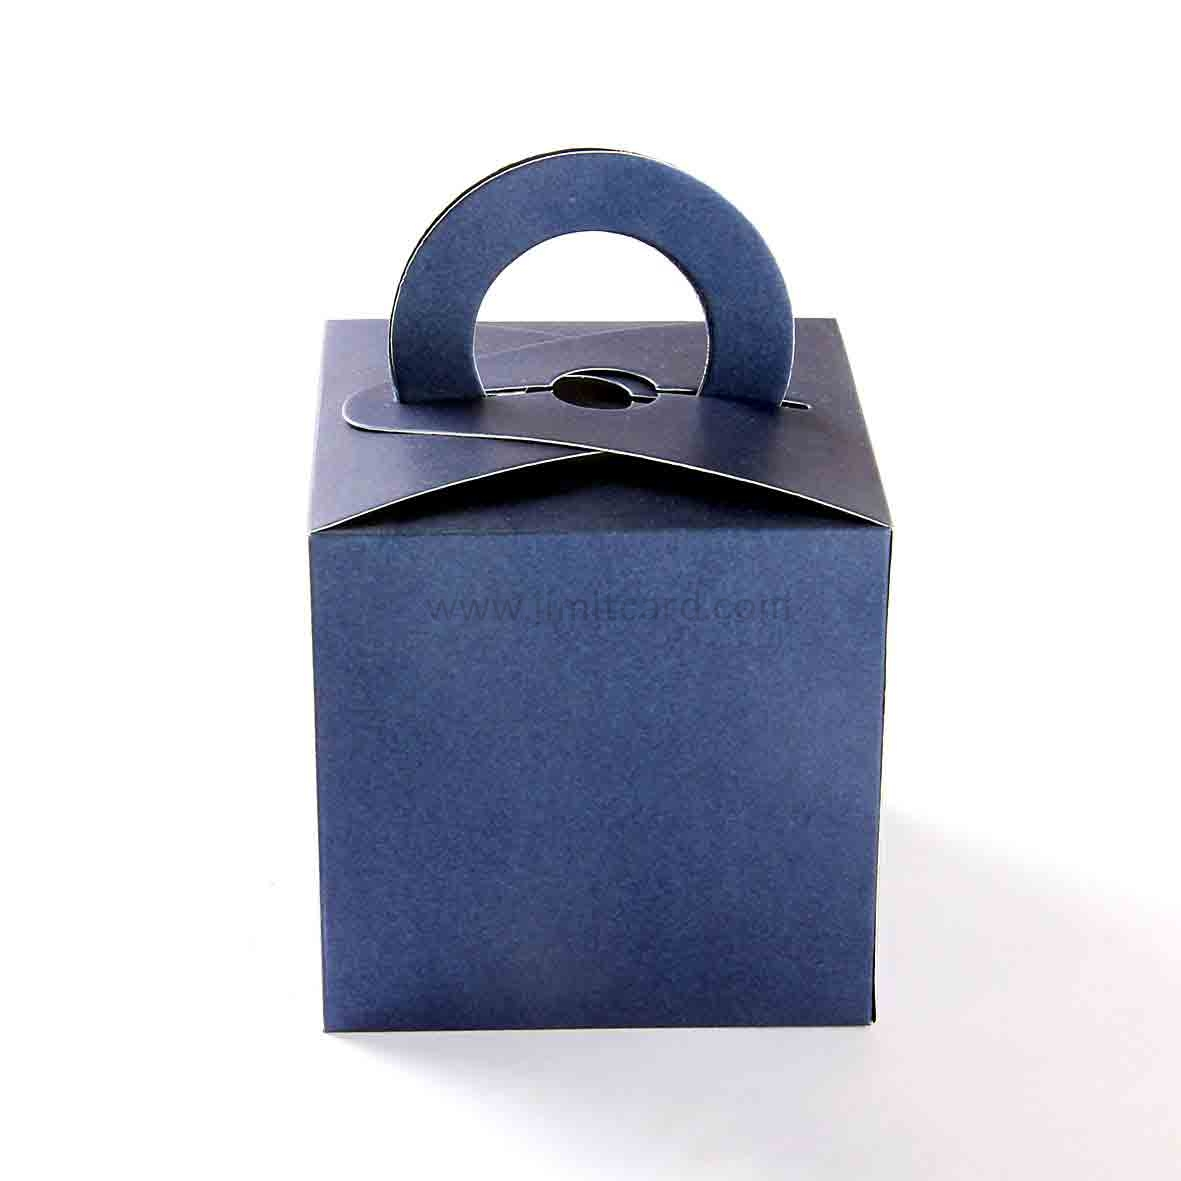 Square Wedding Party Favor Box in Royal Blue with a Holder